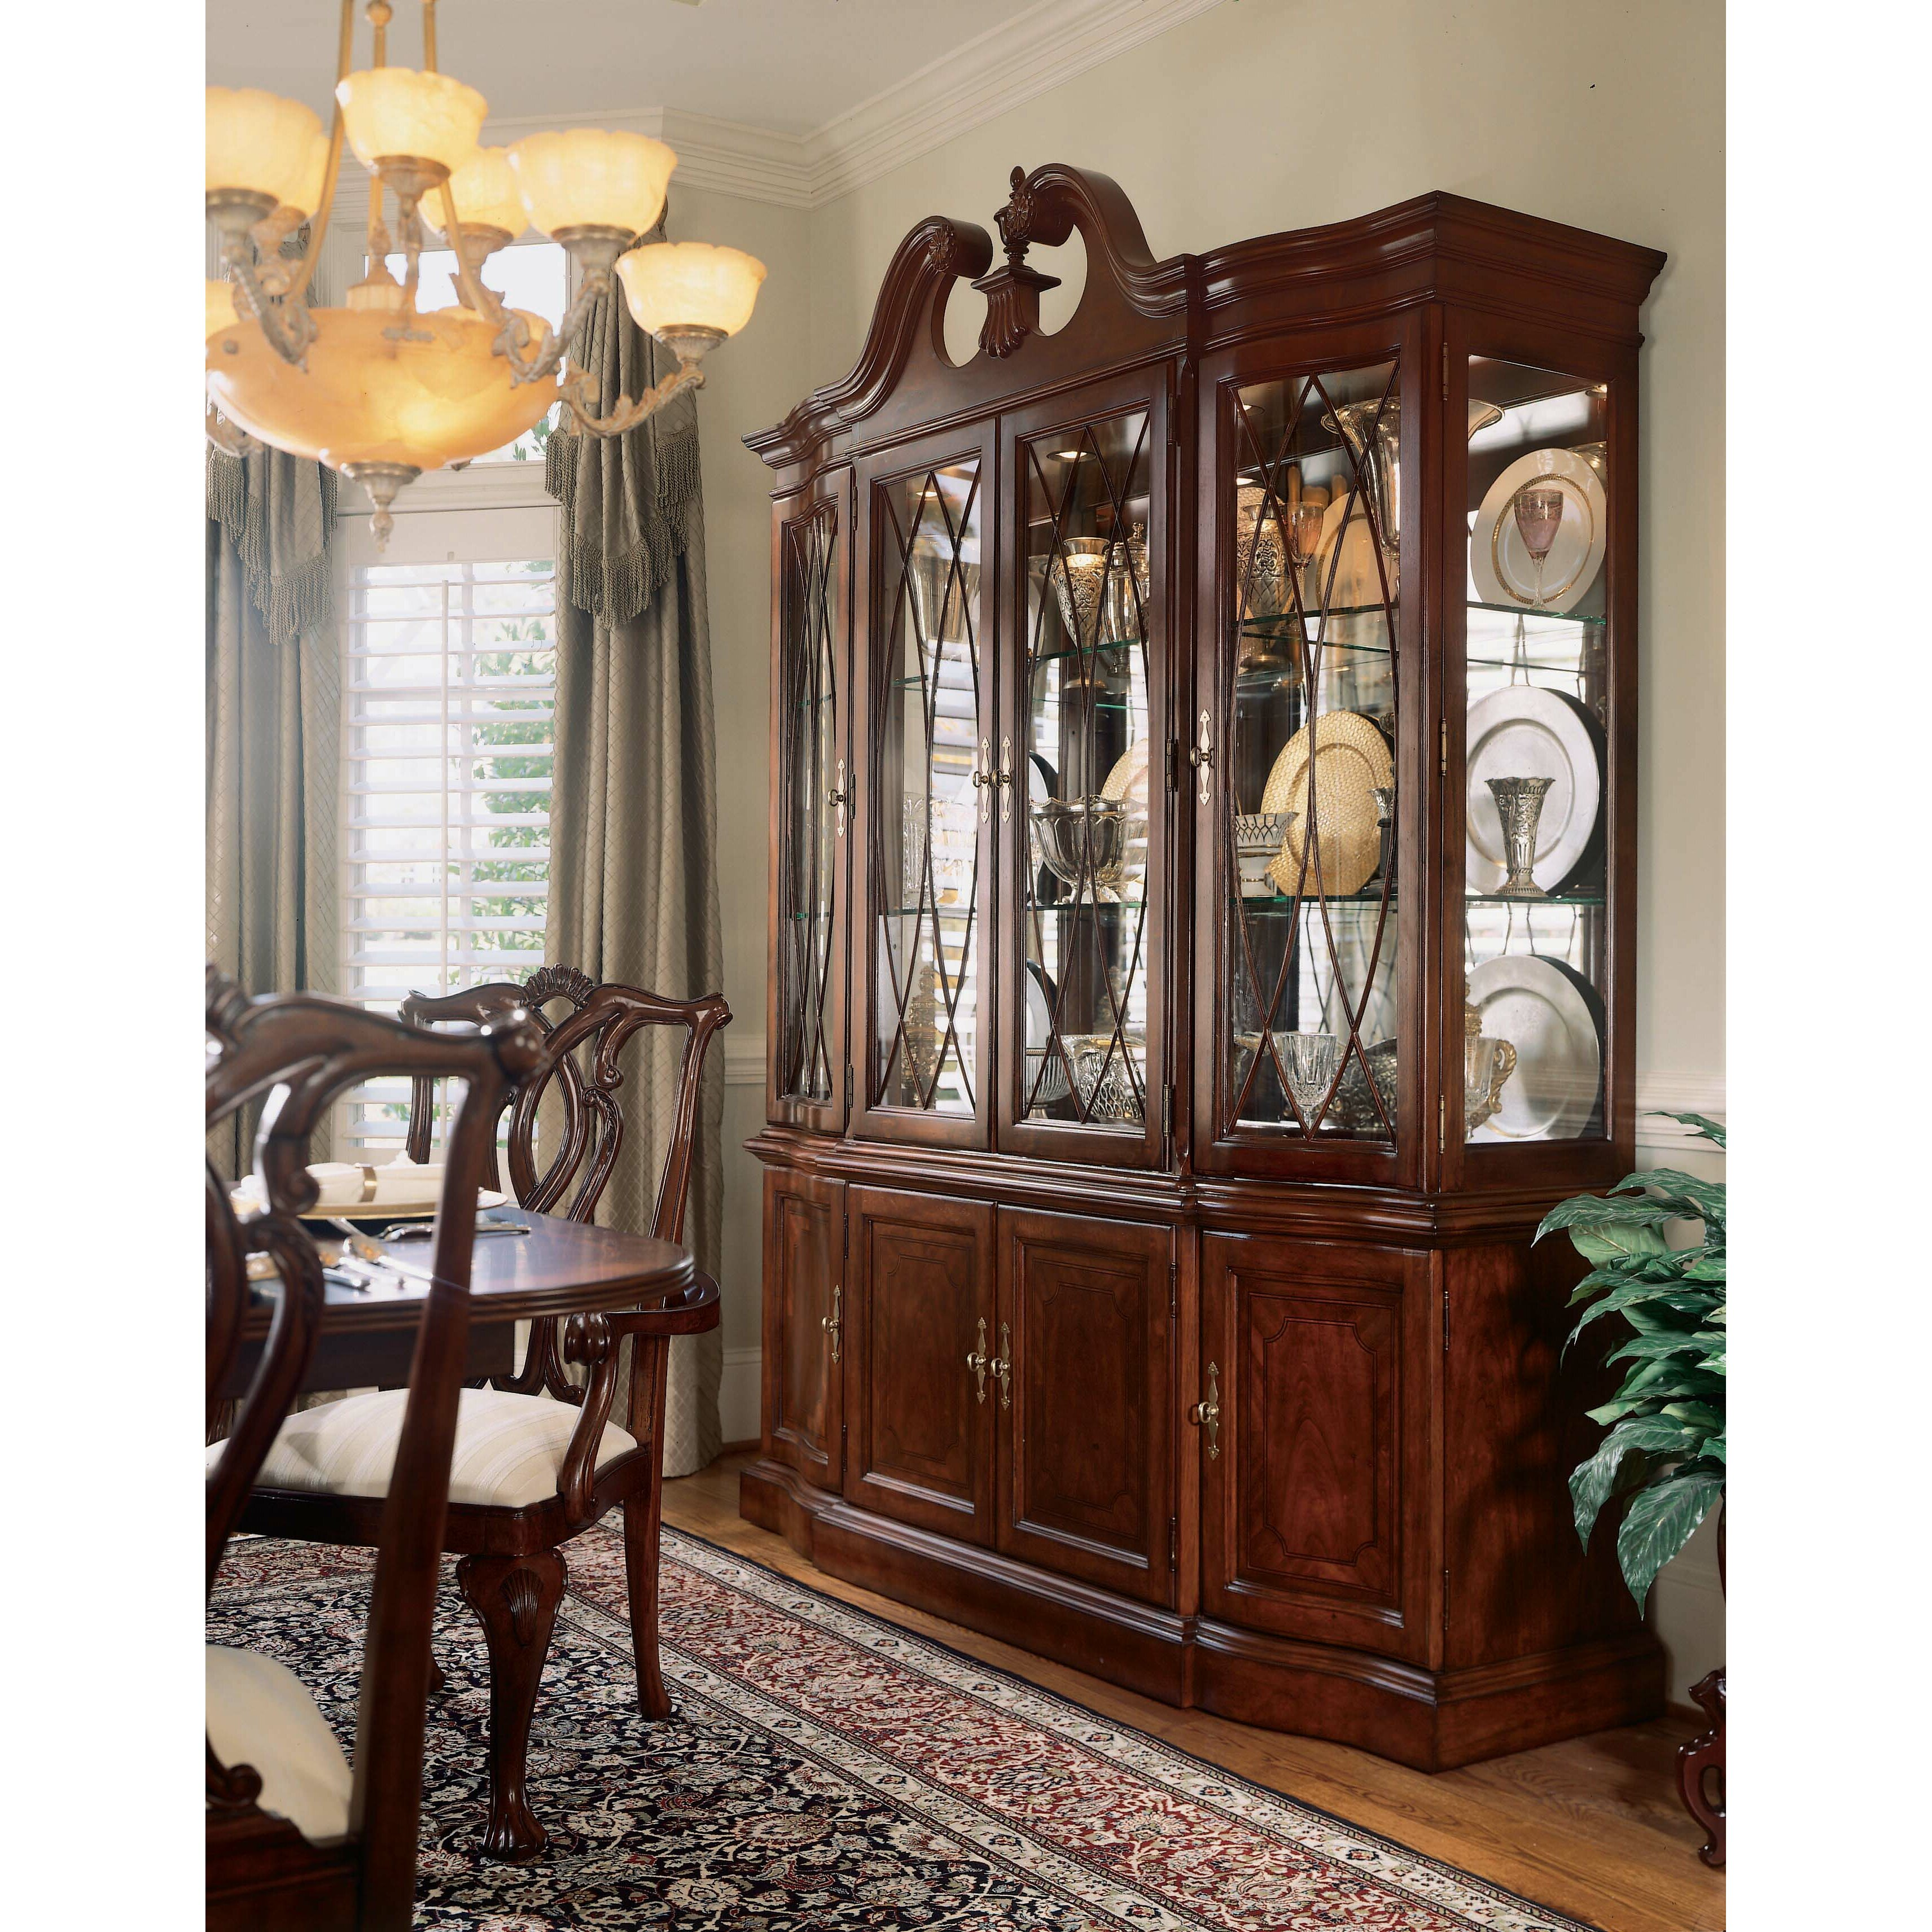 China Cabinet With Hutch American Drew Cherry Grove China Cabinet Reviews Wayfair